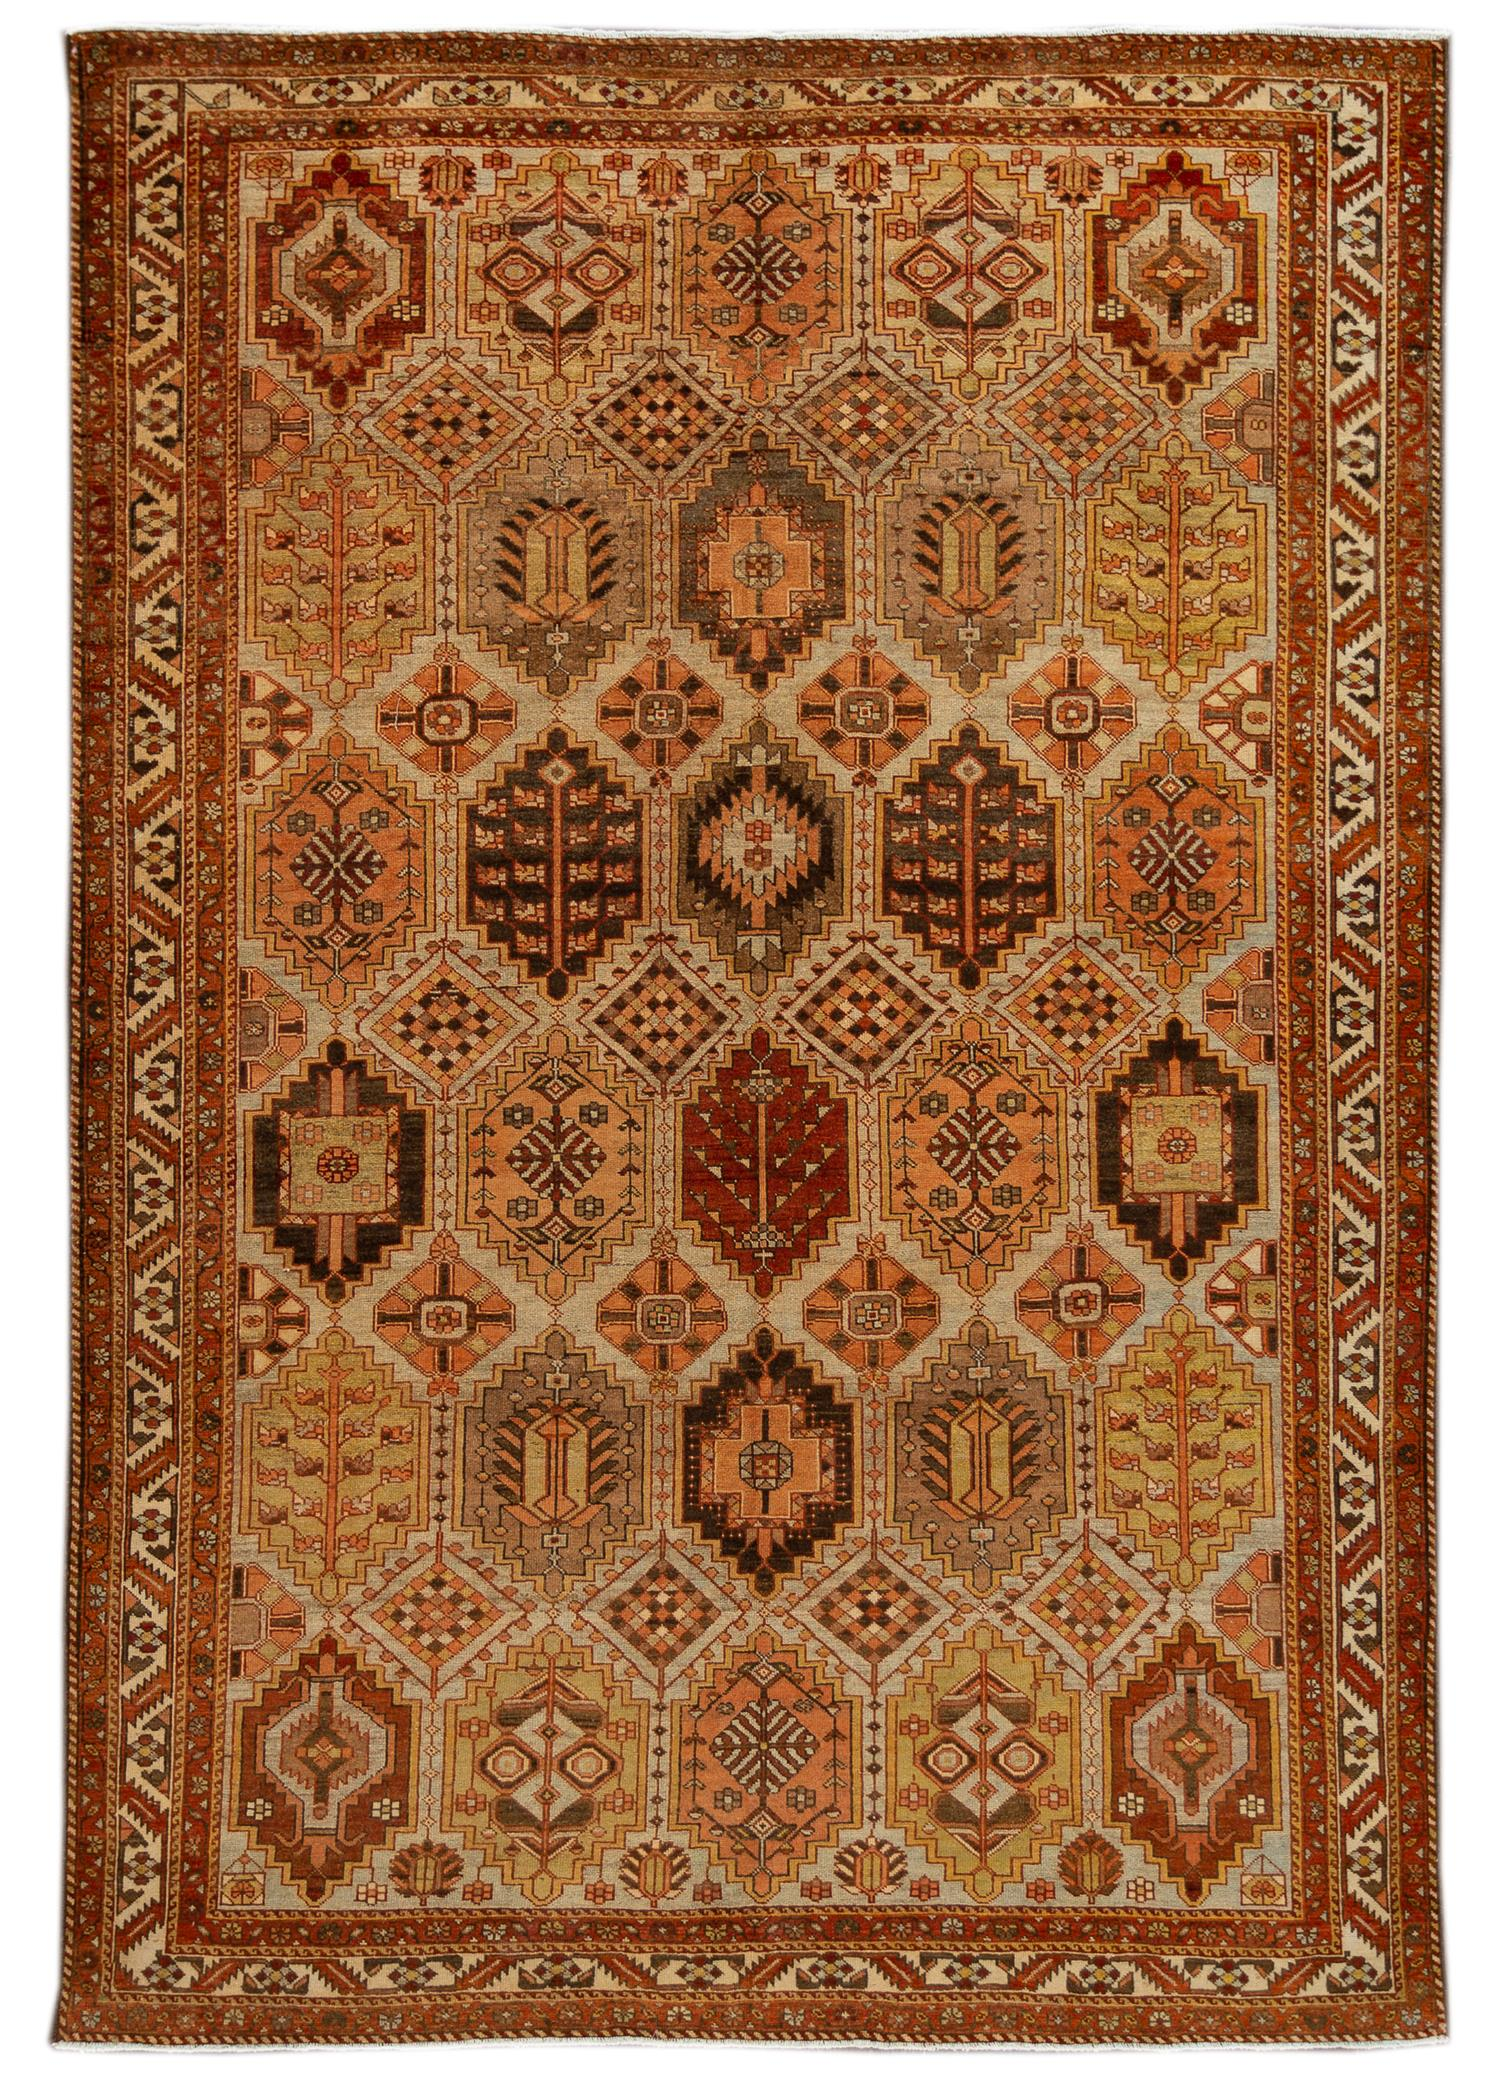 Antique Bakhtiari Rug,  7' x 10'